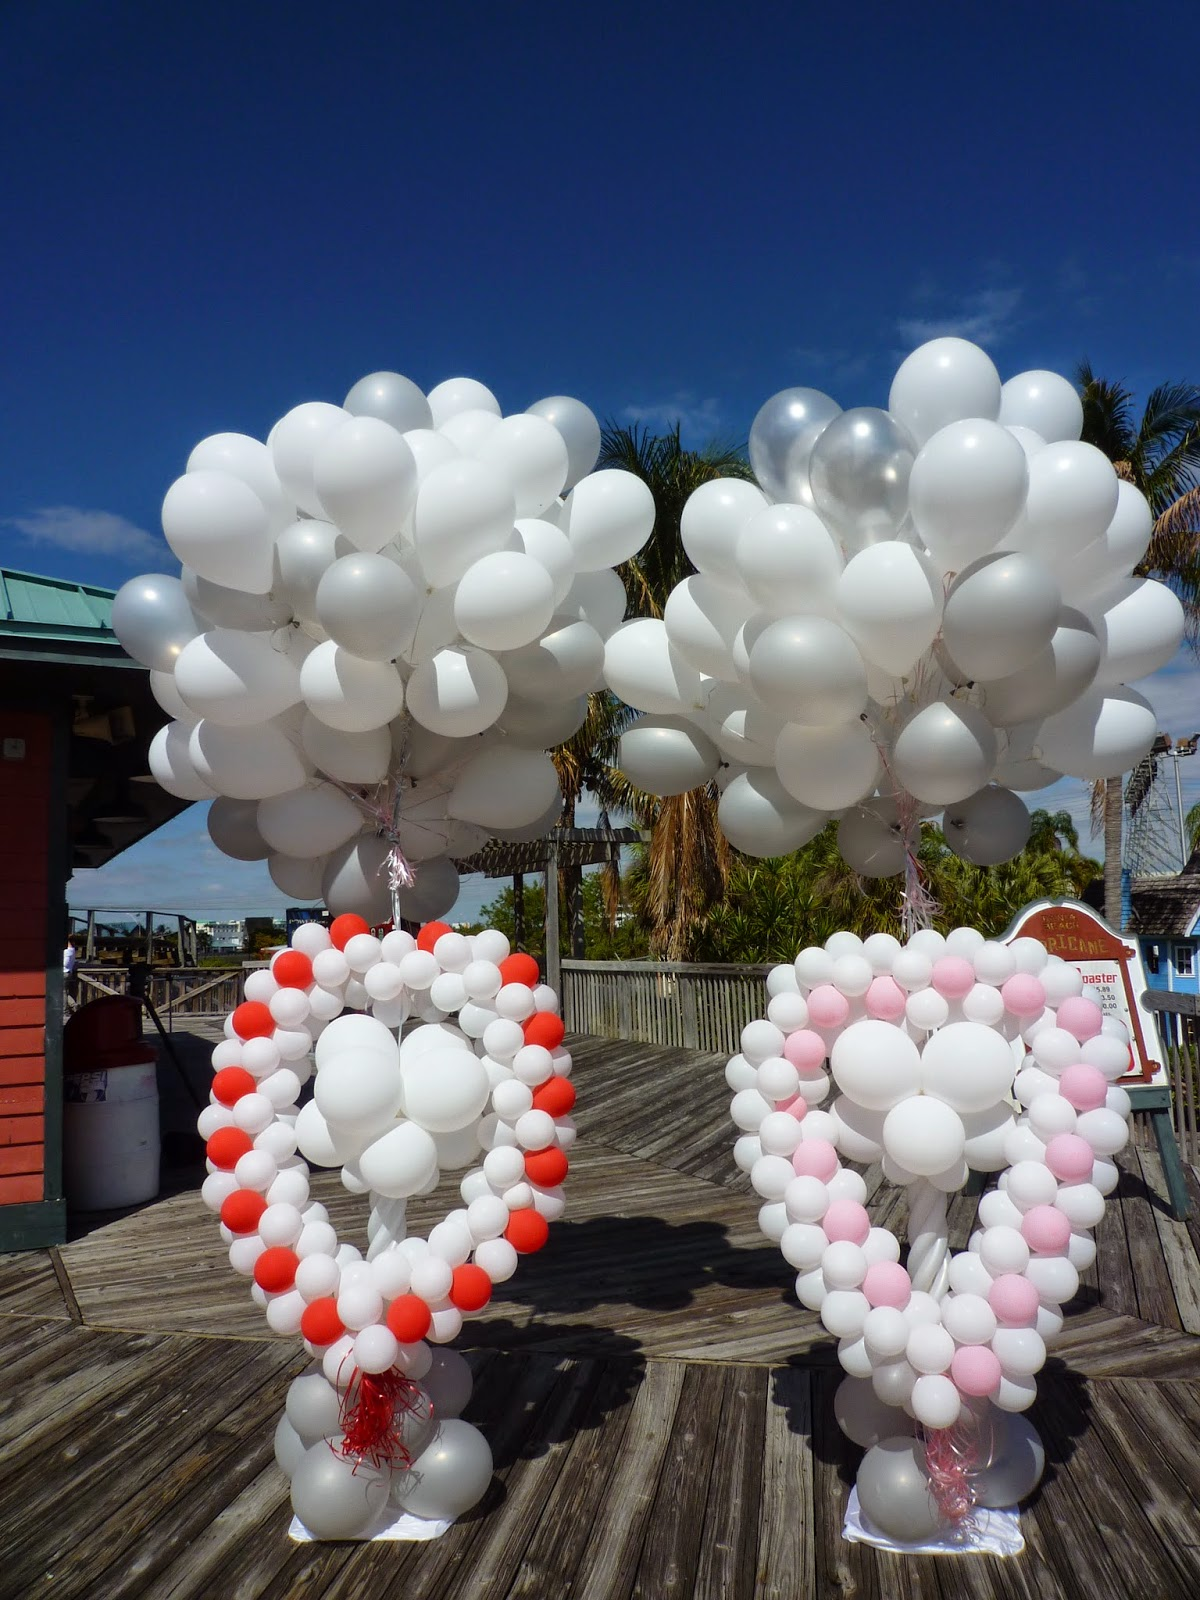 Release heart balloon with helium balloons on wedding ceremony